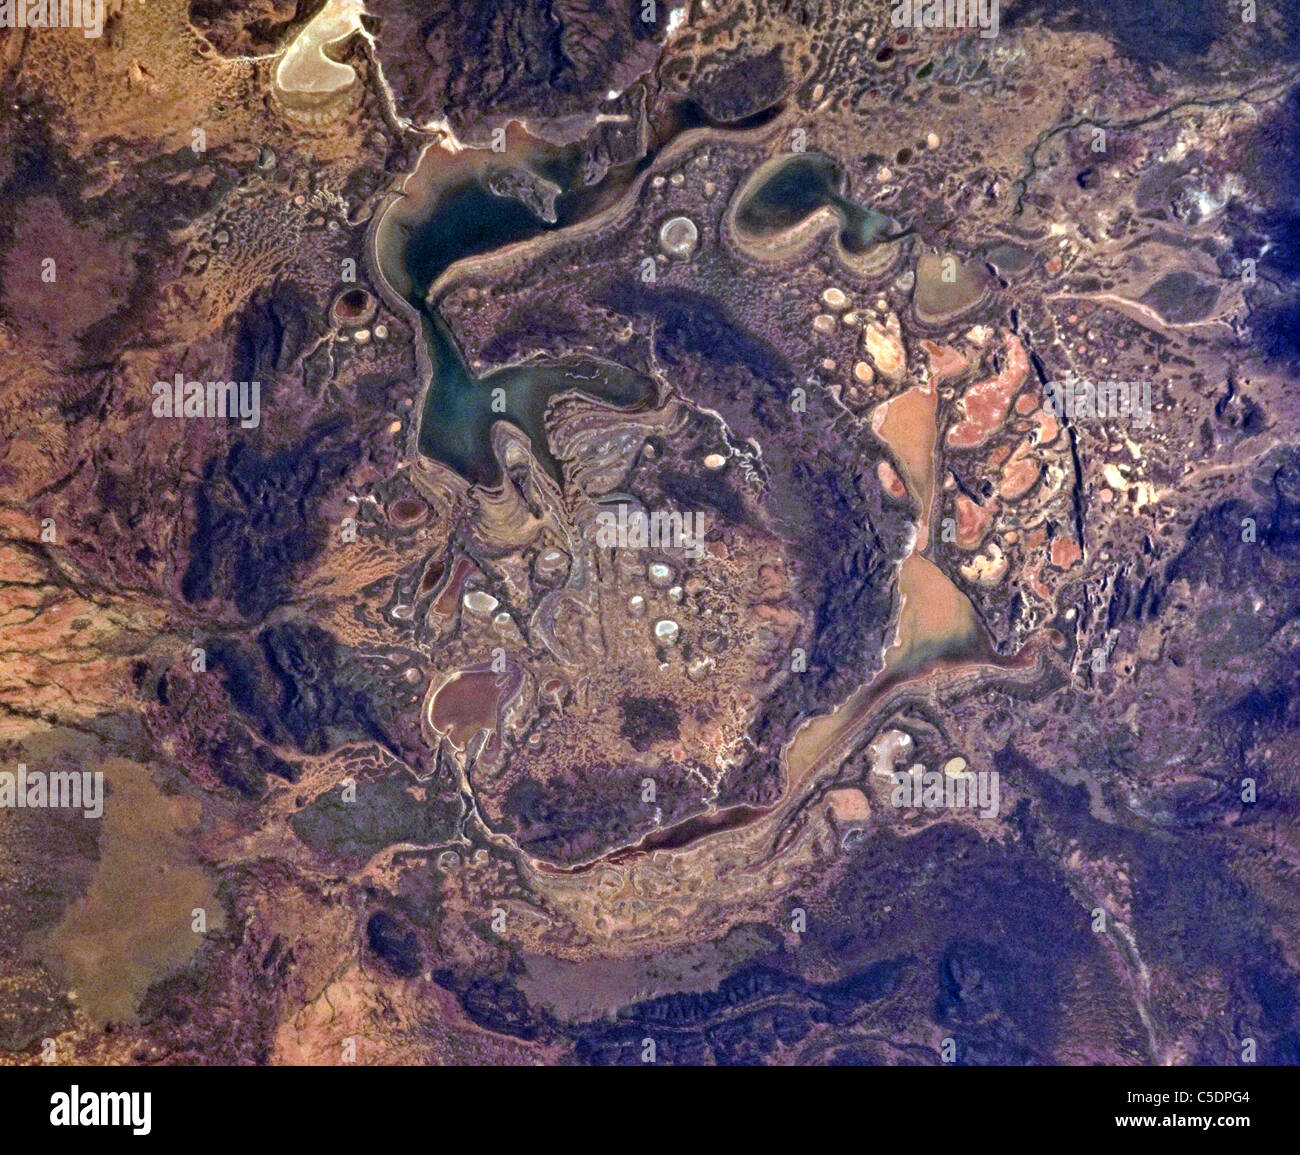 The Shoemaker (formerly Teague) Impact Structure located in Western Australia in a drainage basin south of the Waldburg - Stock Image